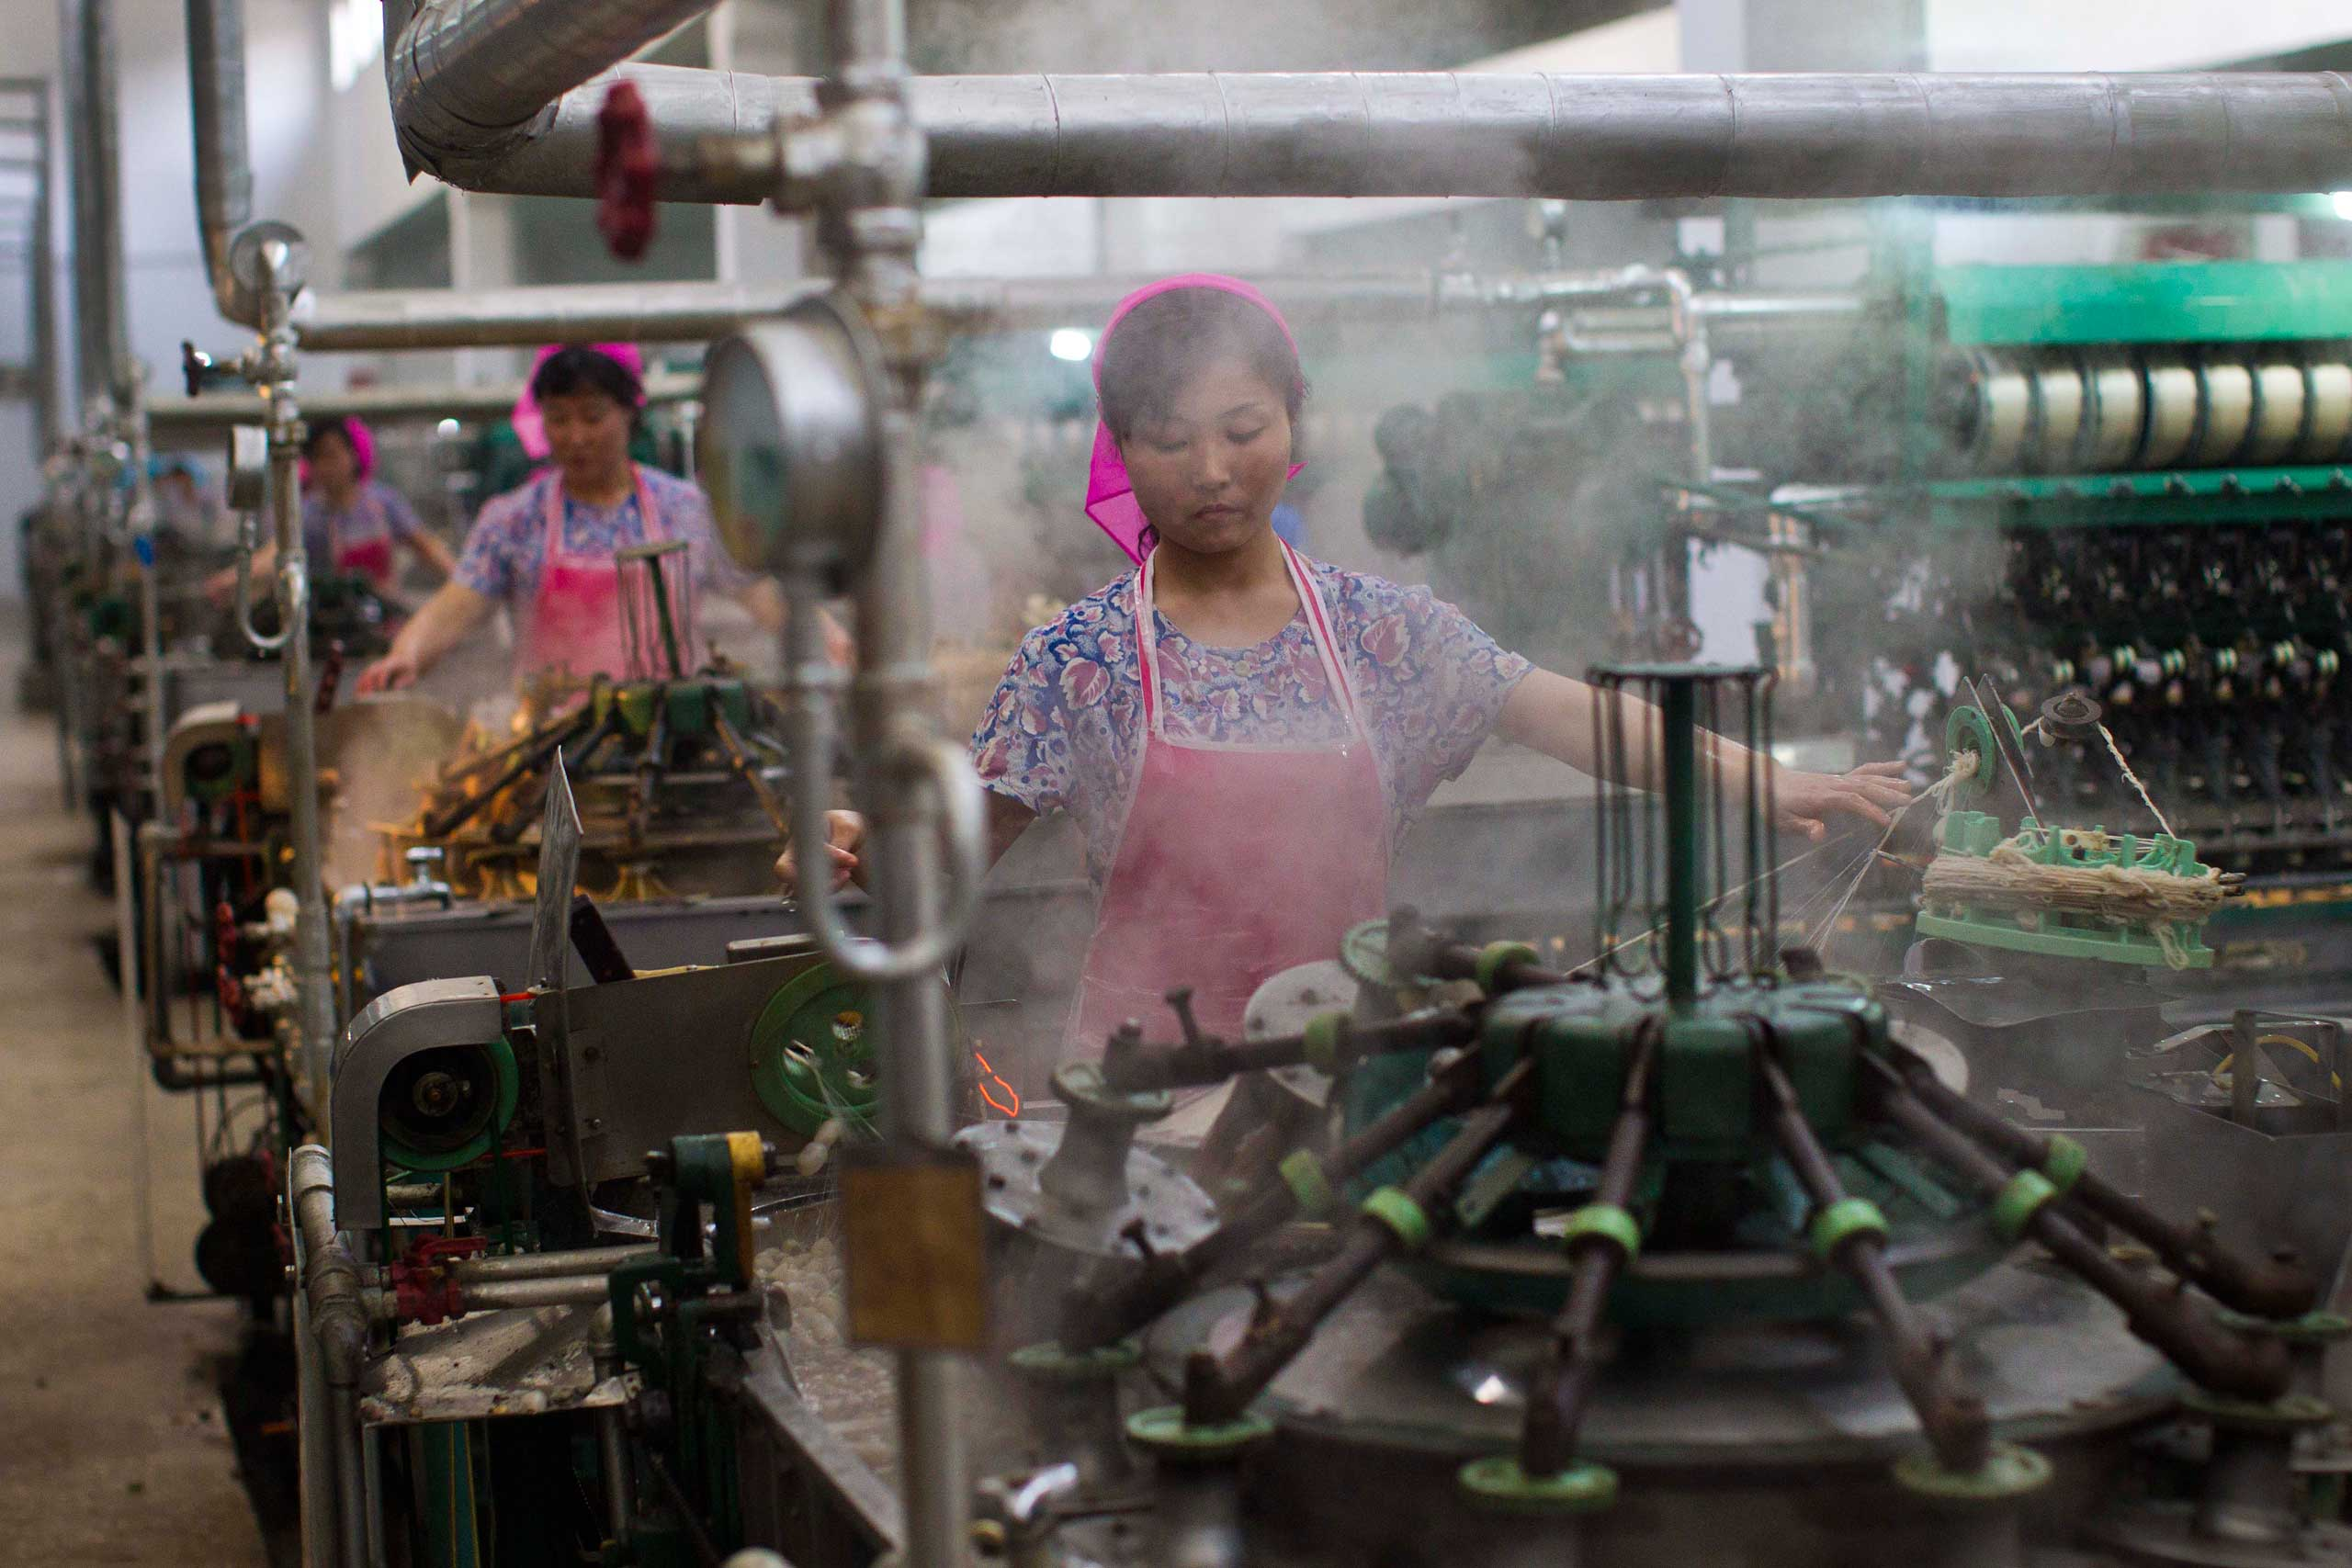 April 9, 2012. North Korean women are pictured working in a thread factory in Pyongyang.